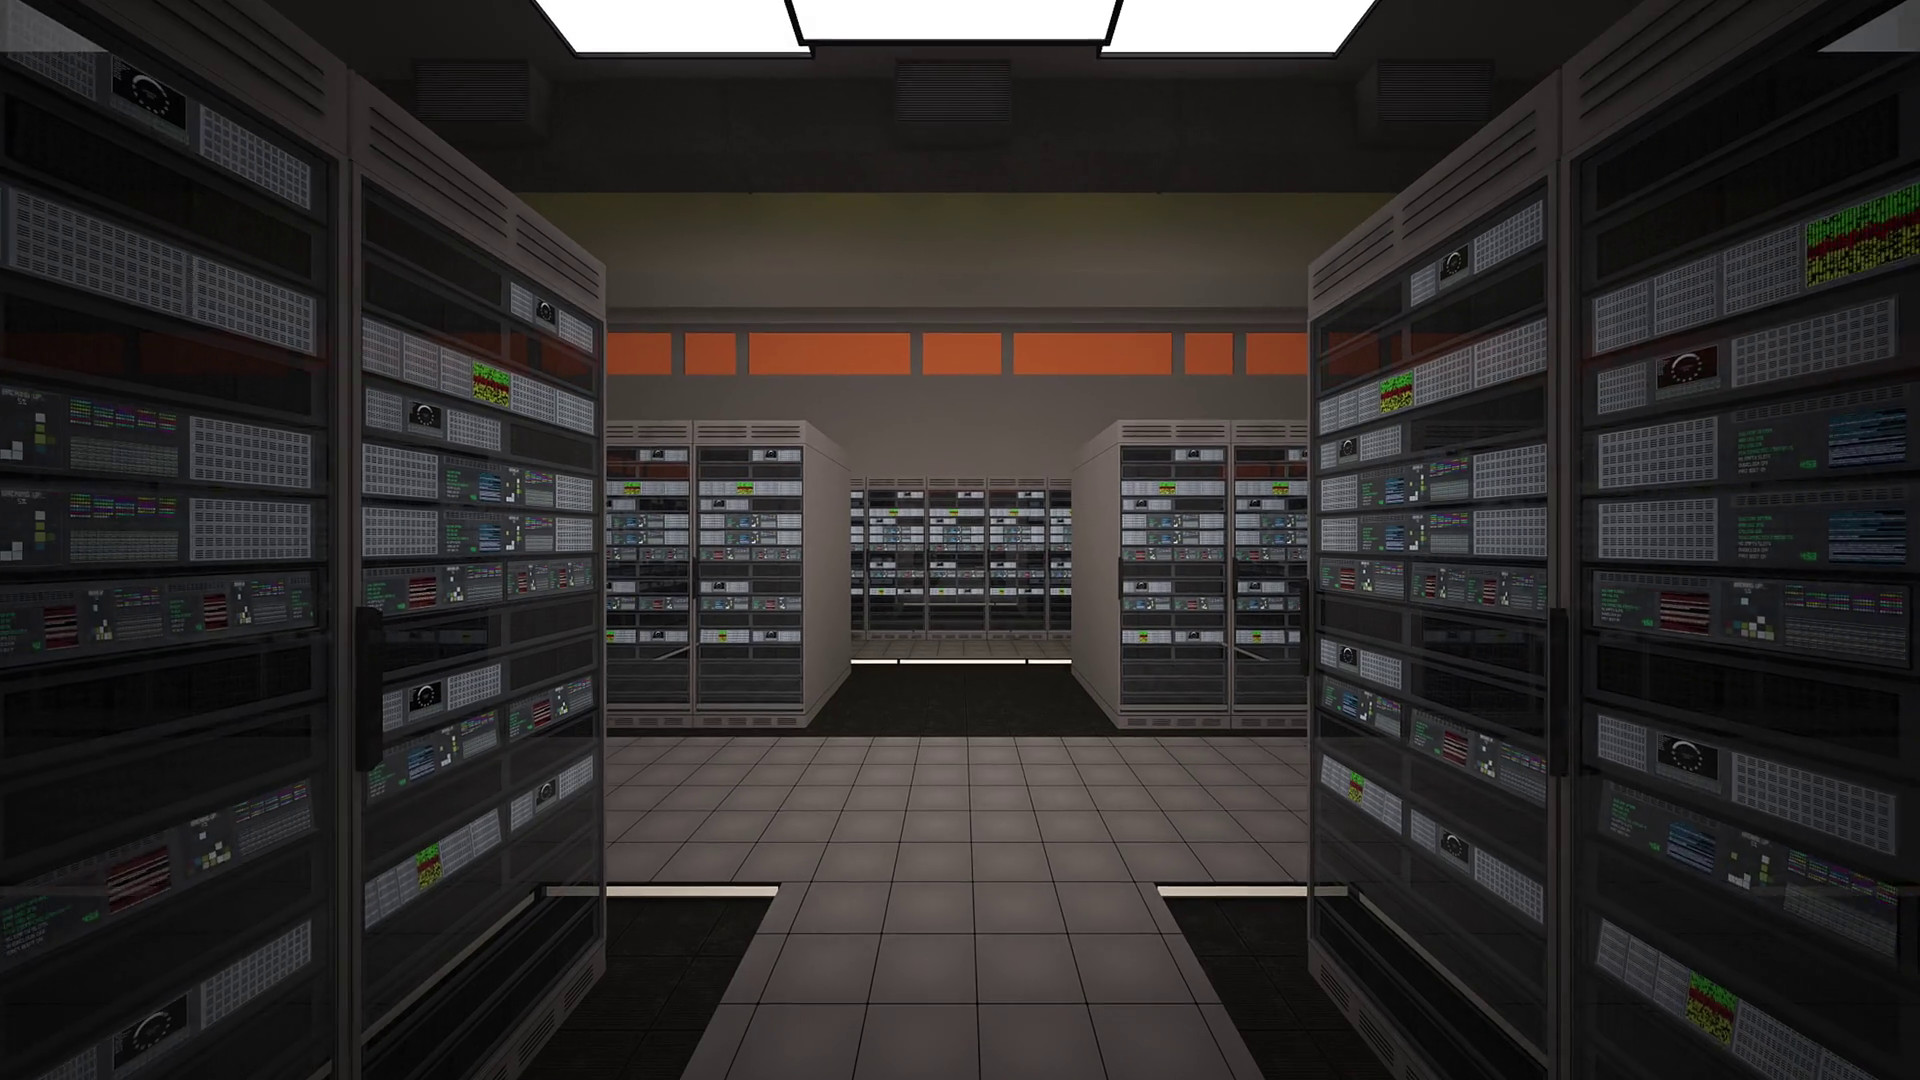 1920x1080 Server Room Stock Footage Video 11004155 | Shutterstock